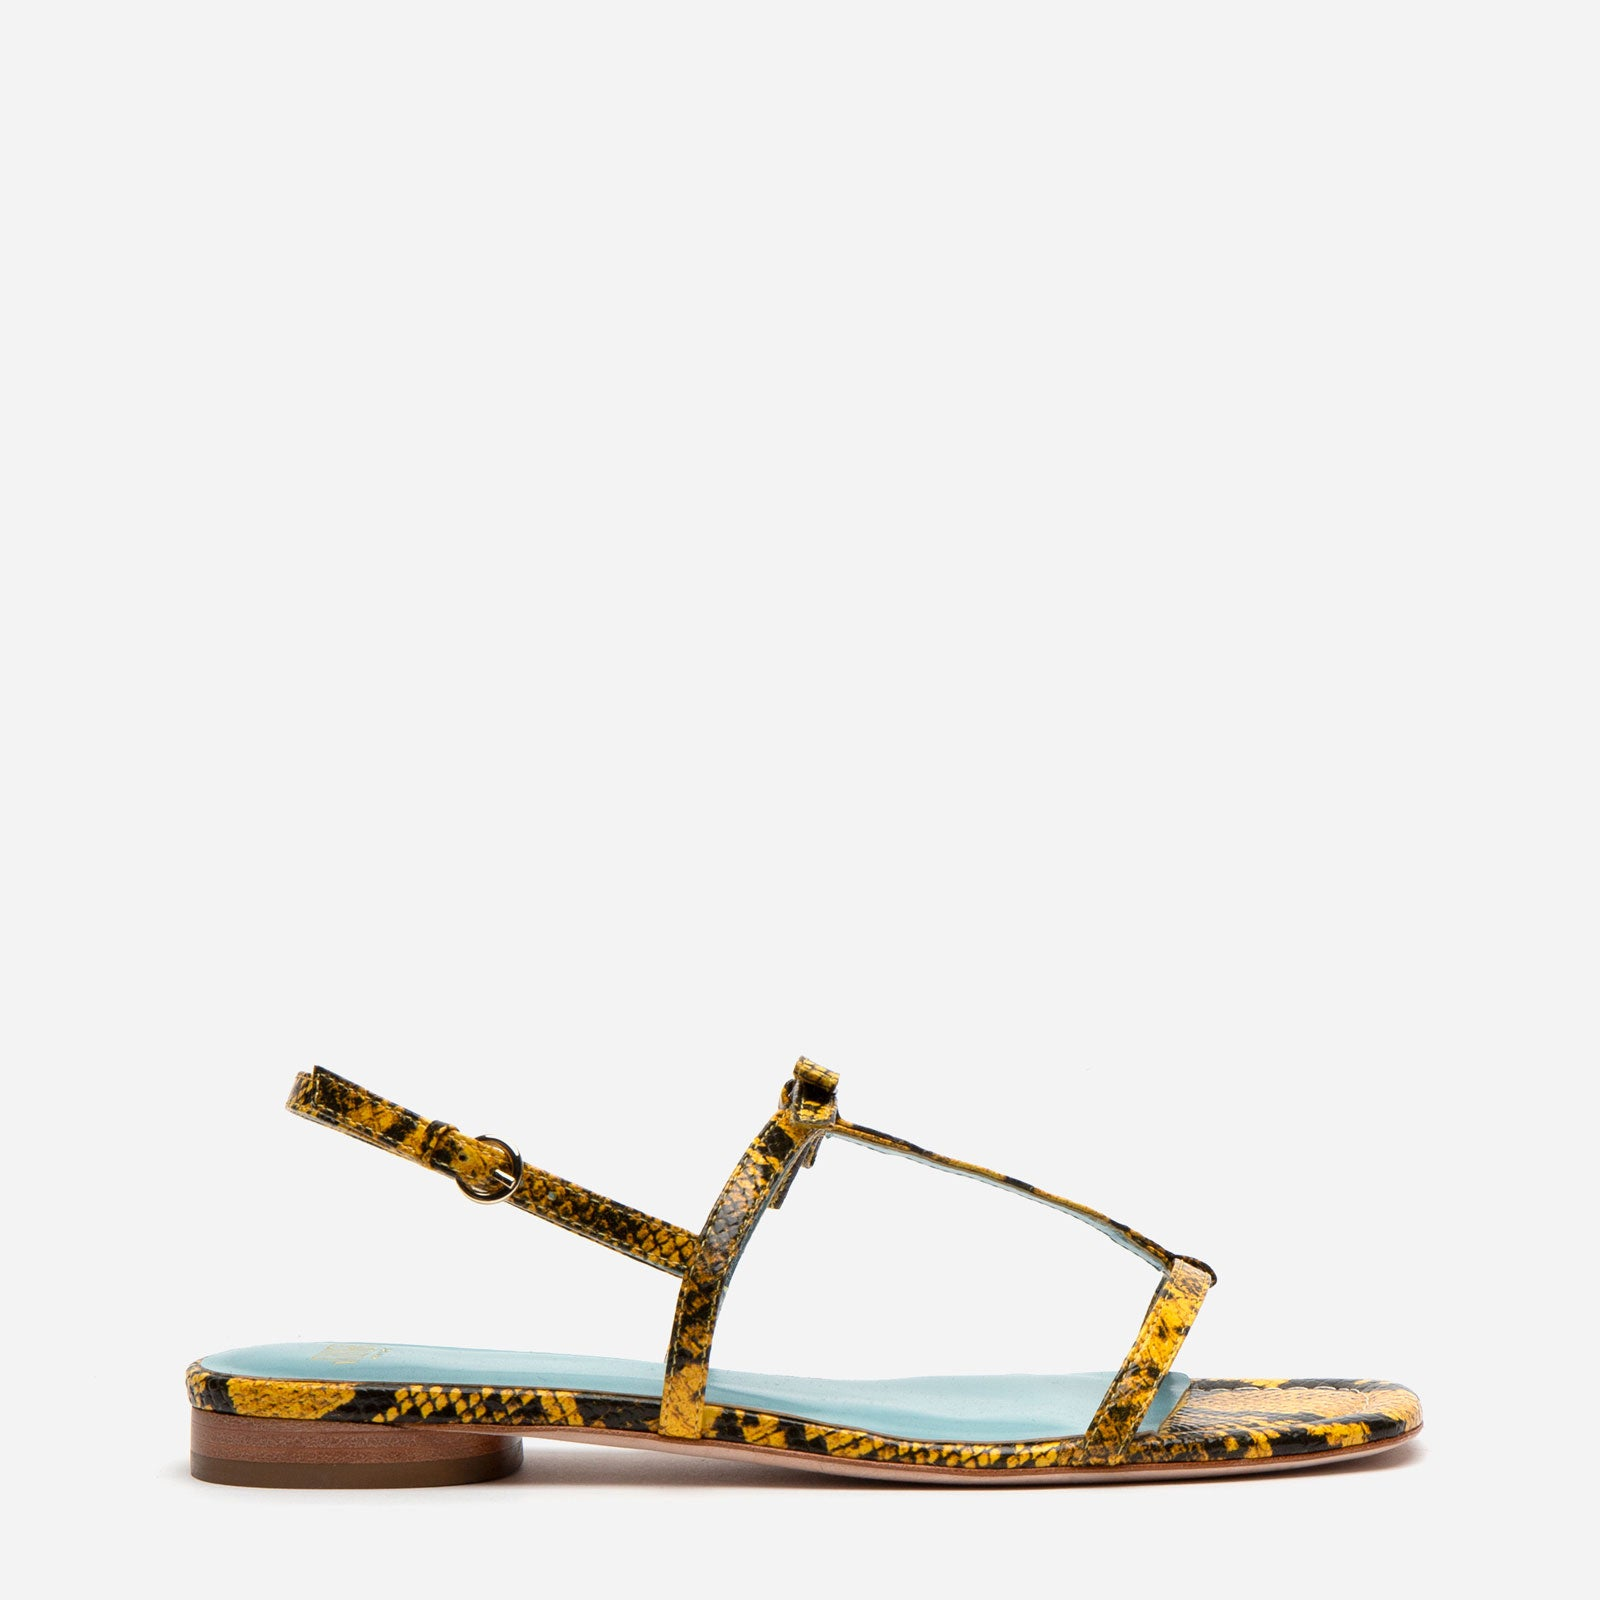 Lily Snake Embossed Leather Sandal Yellow - Frances Valentine